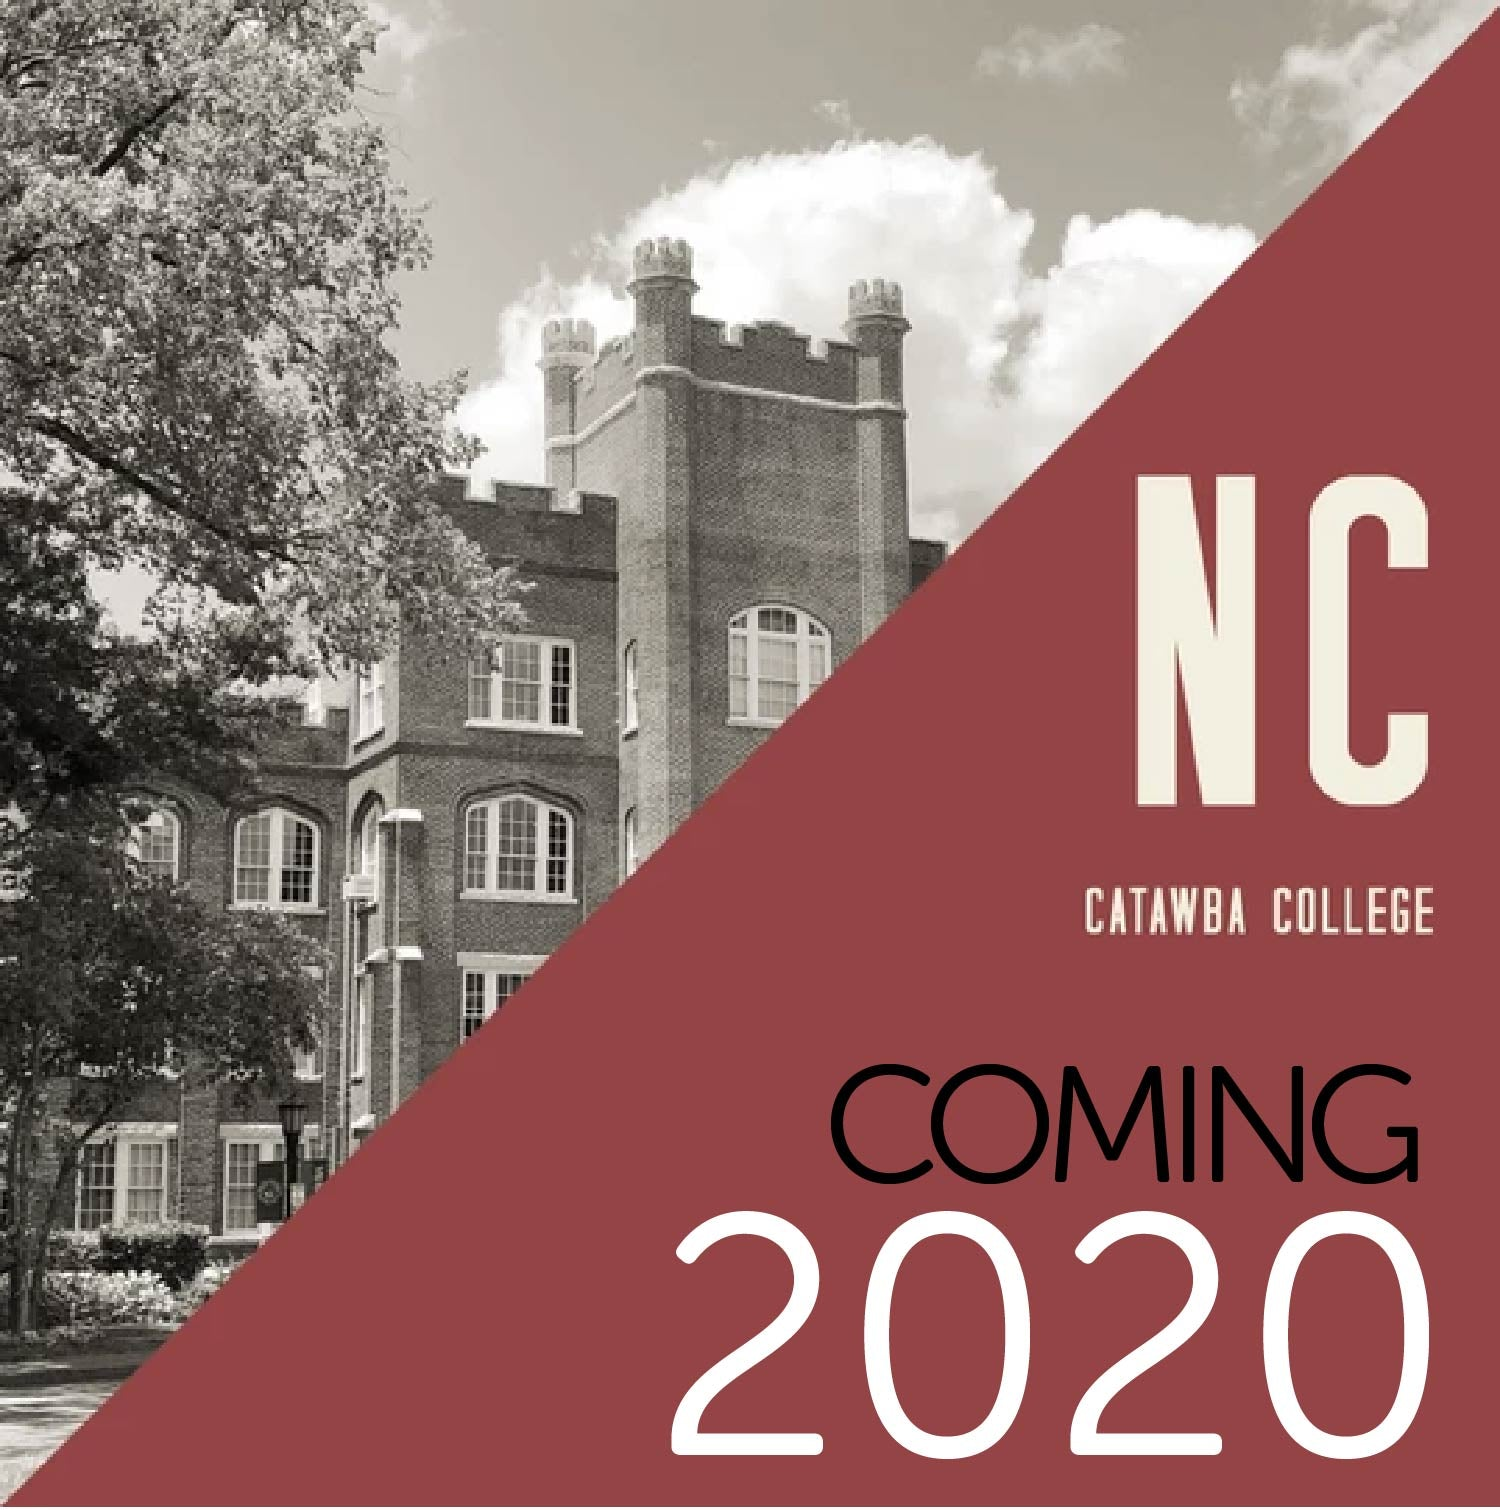 Catawba College | Coming 2020